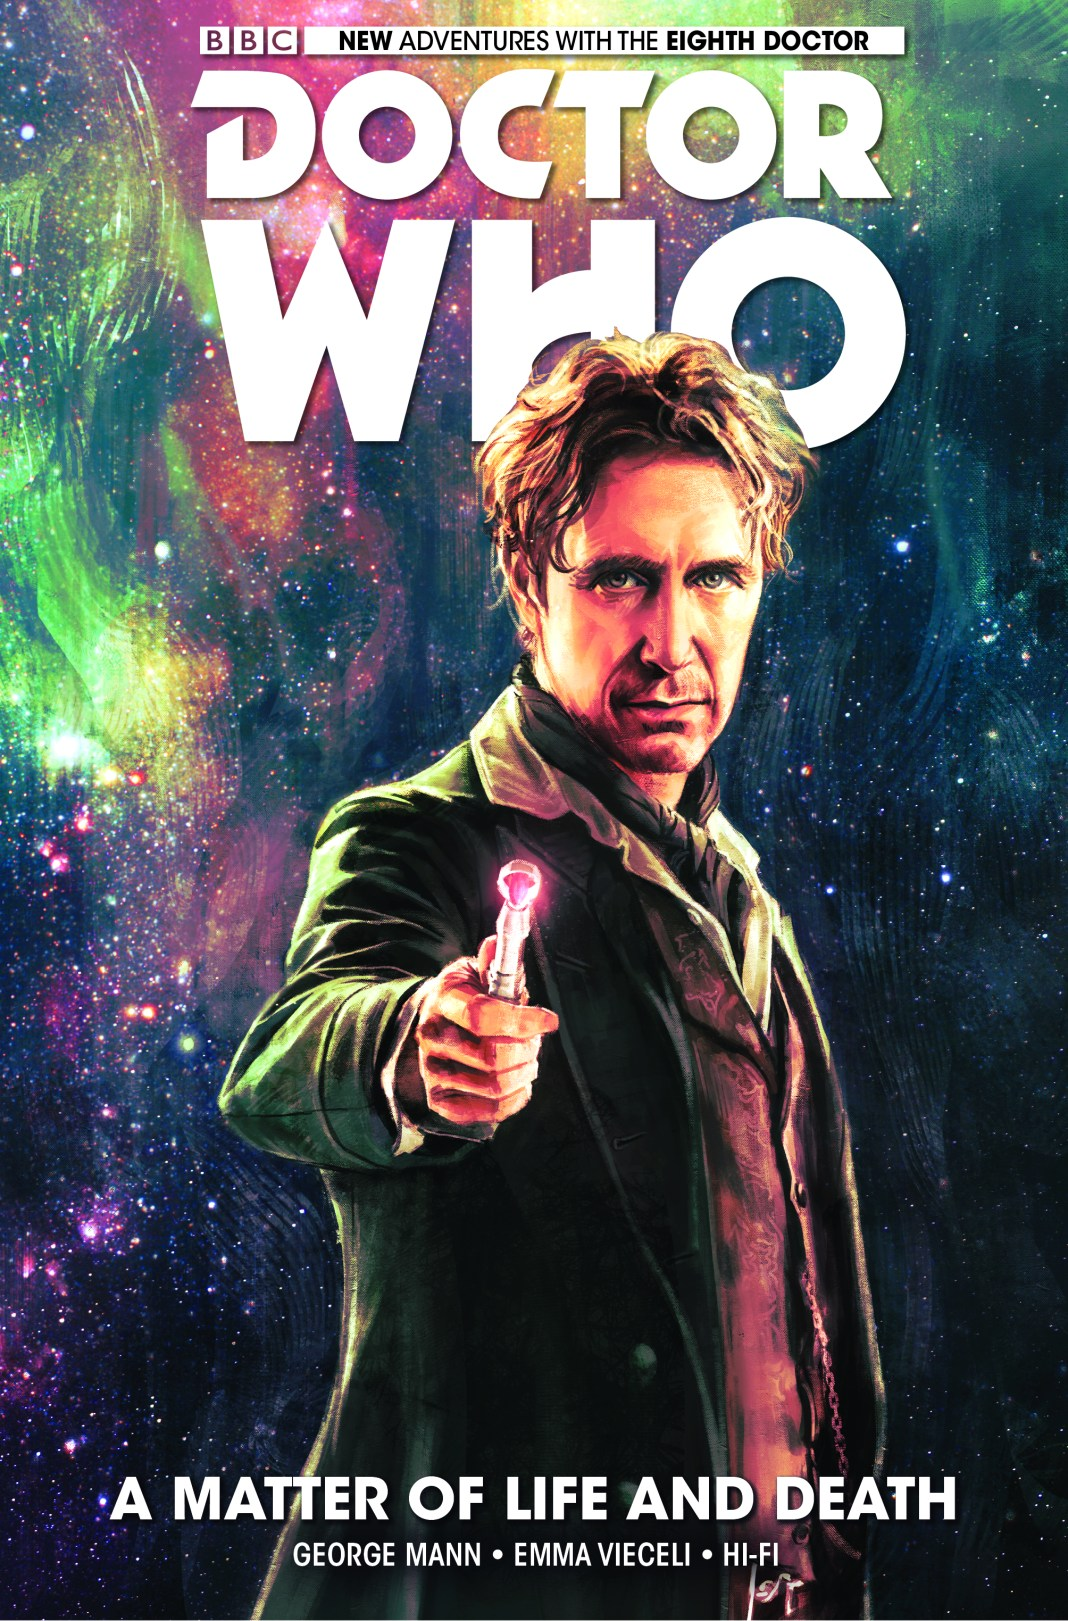 Titan Comics - Eighth Doctor Vol 1: A Matter of Life and Death